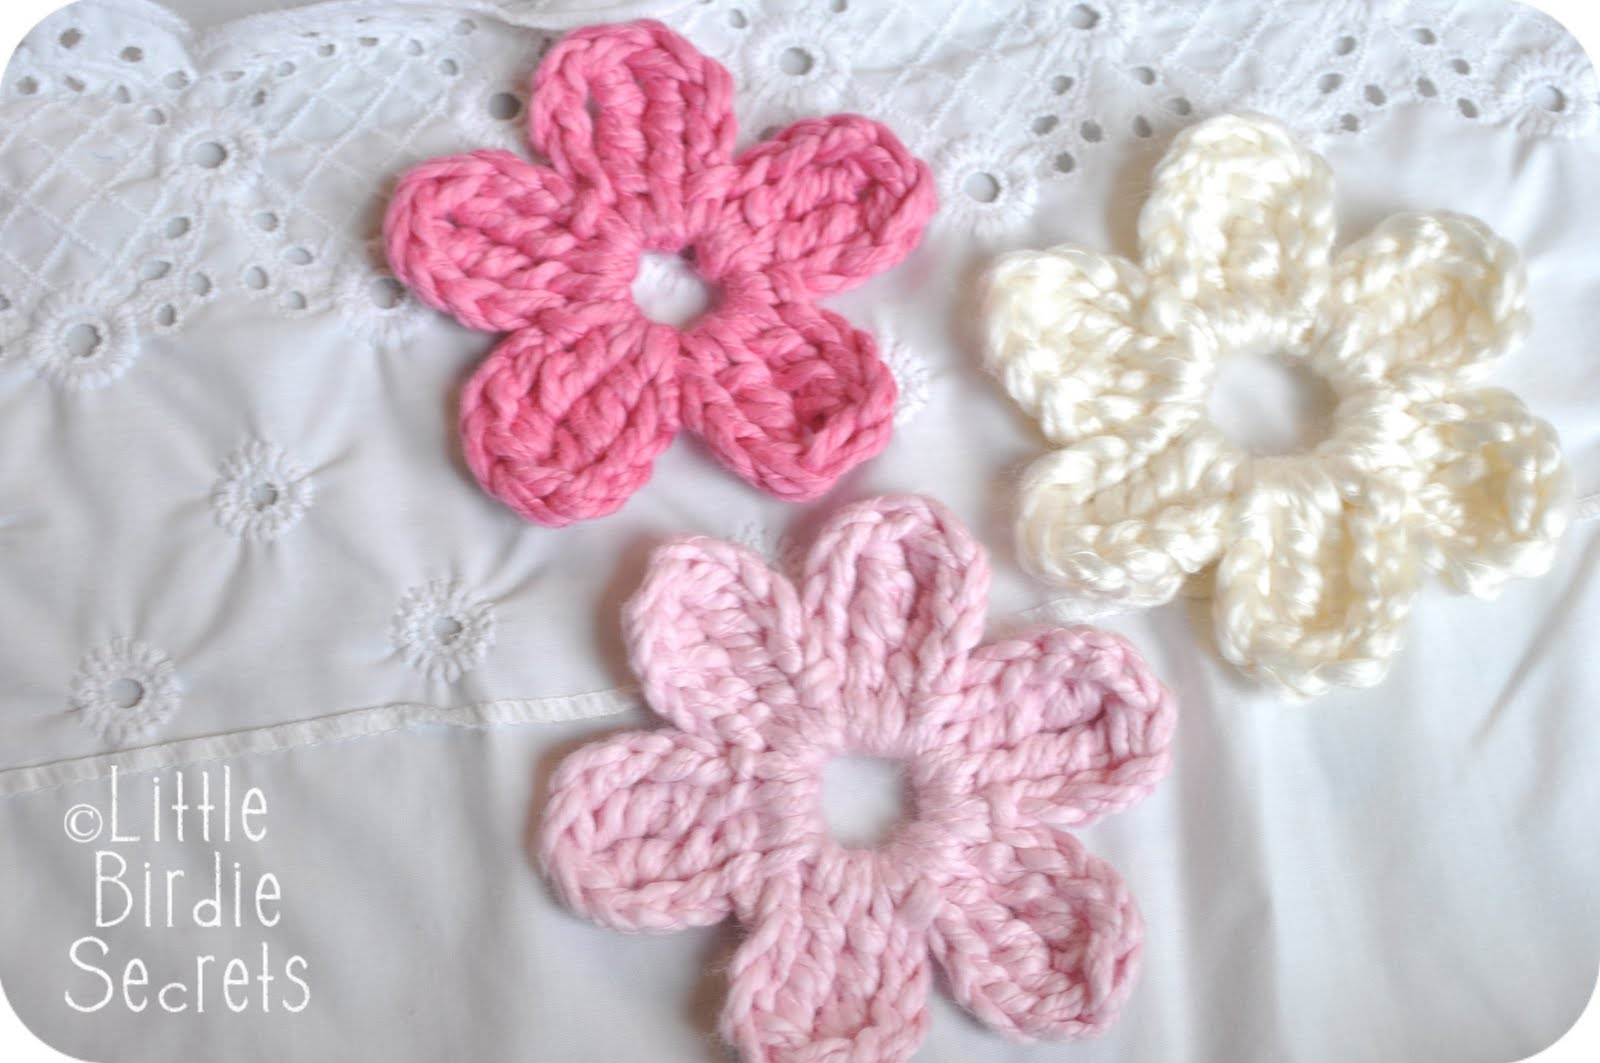 Crochet Pattern Central - Free Flower Crochet Pattern Link Directory